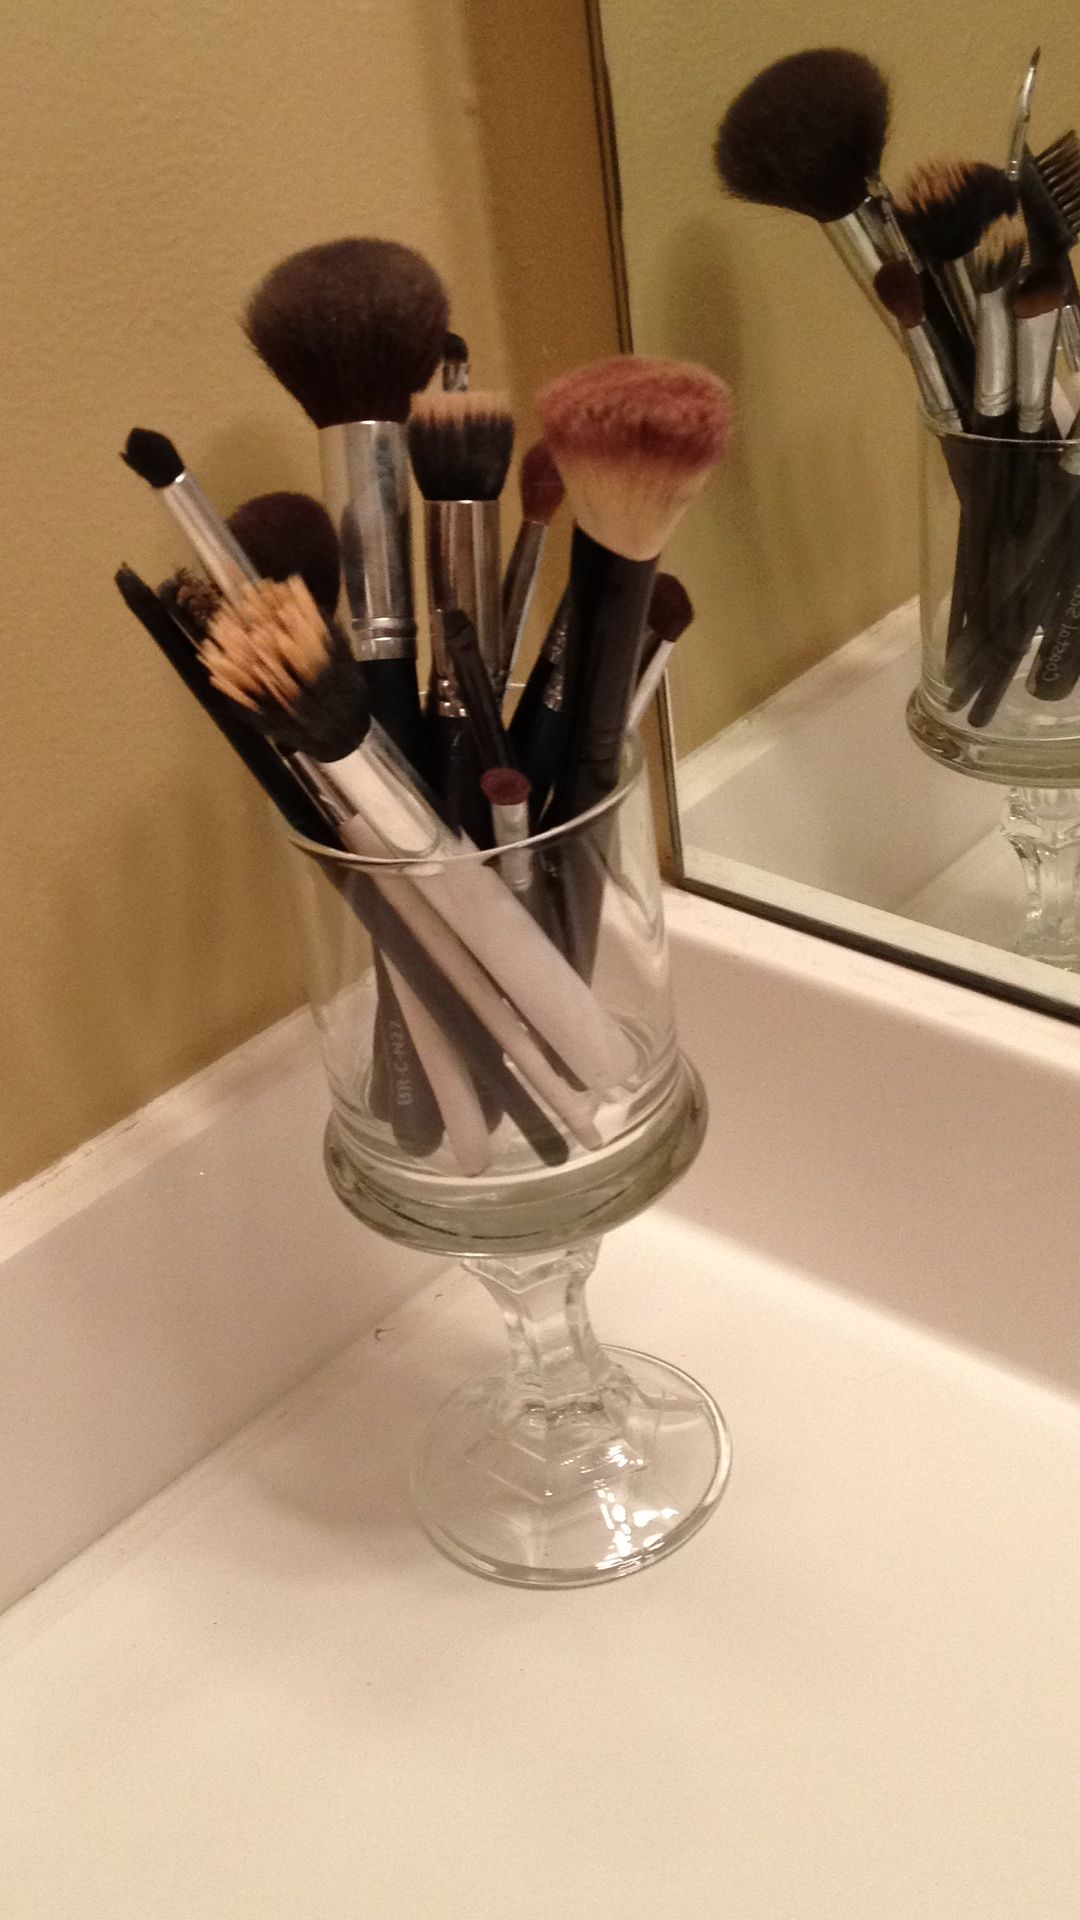 DIY makeup brush holder with a candlestick and a glass cup